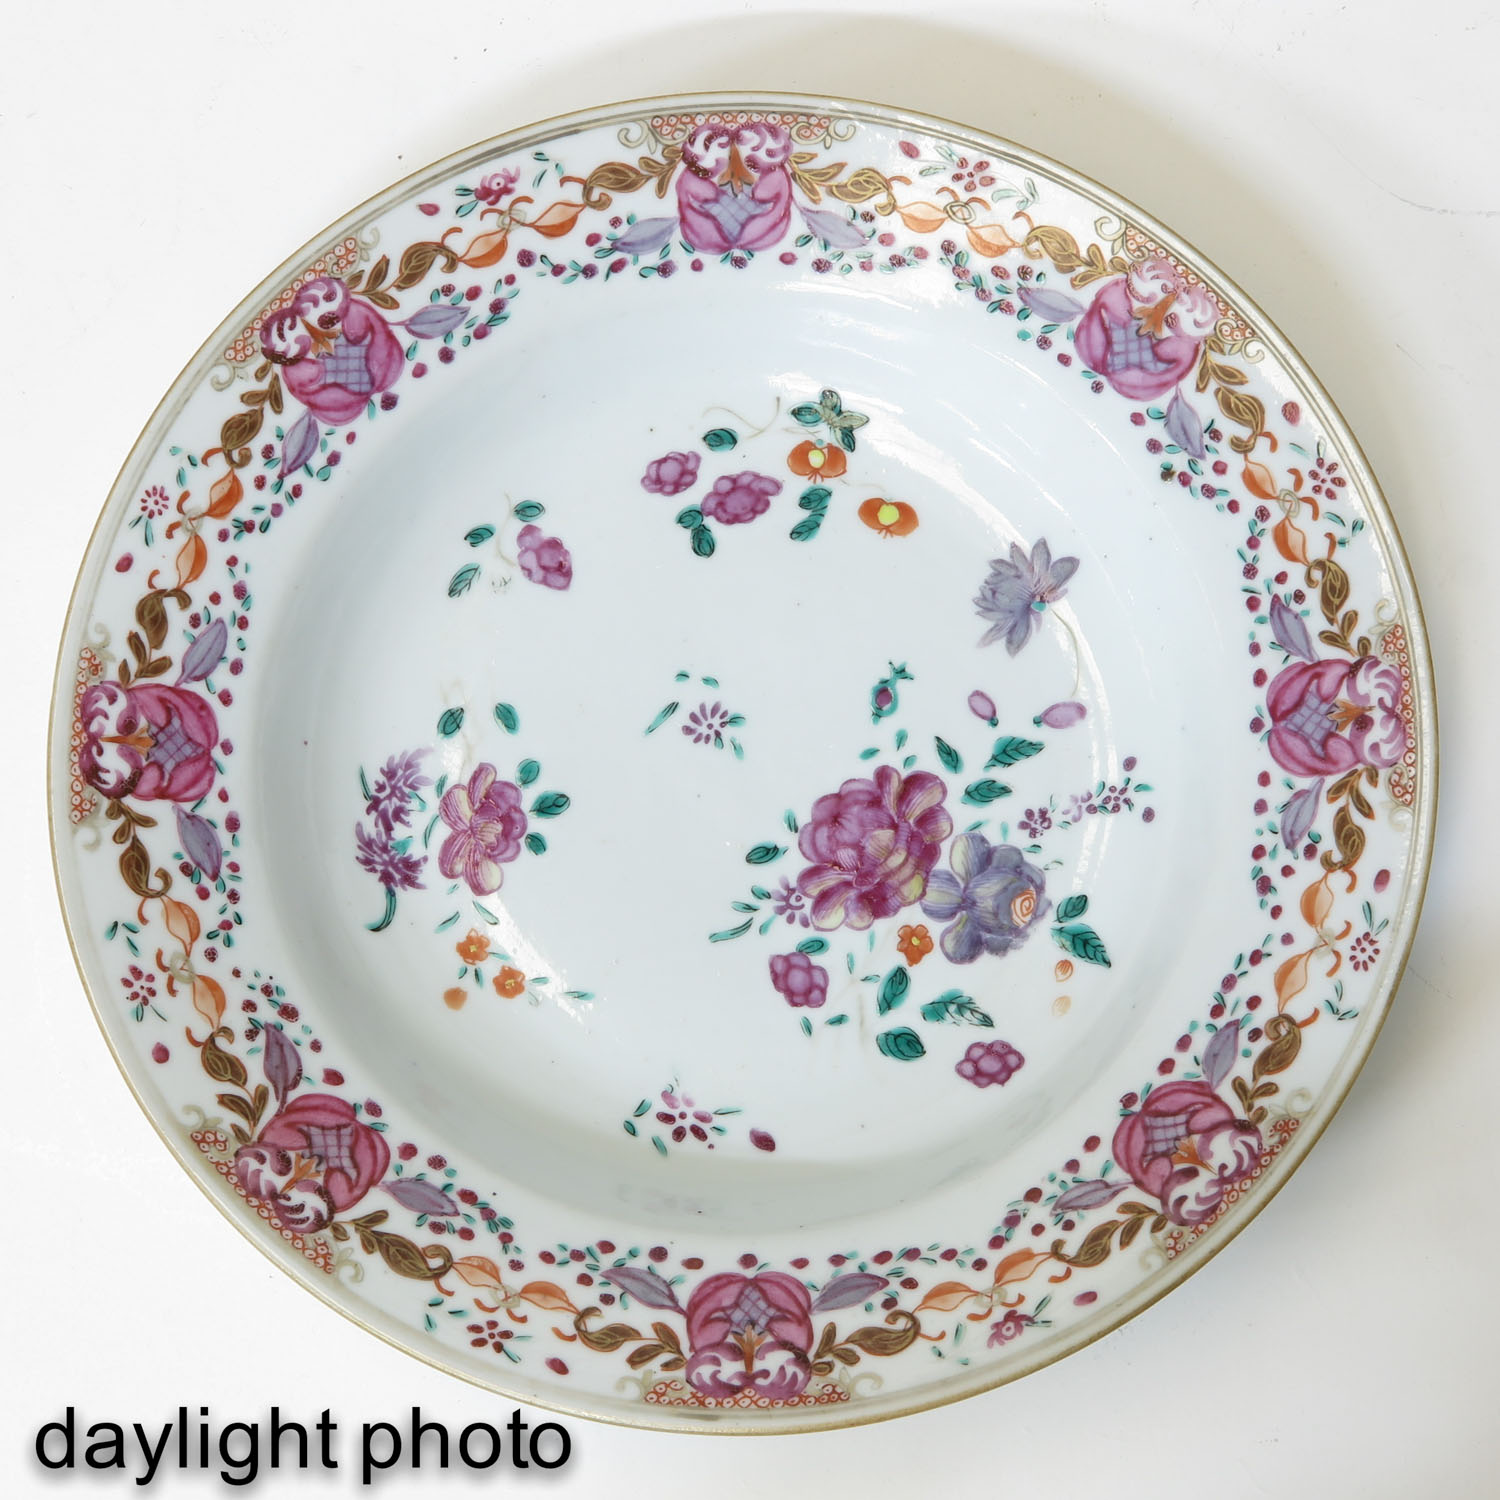 A Series of 3 Famille Rose Plates - Image 9 of 10